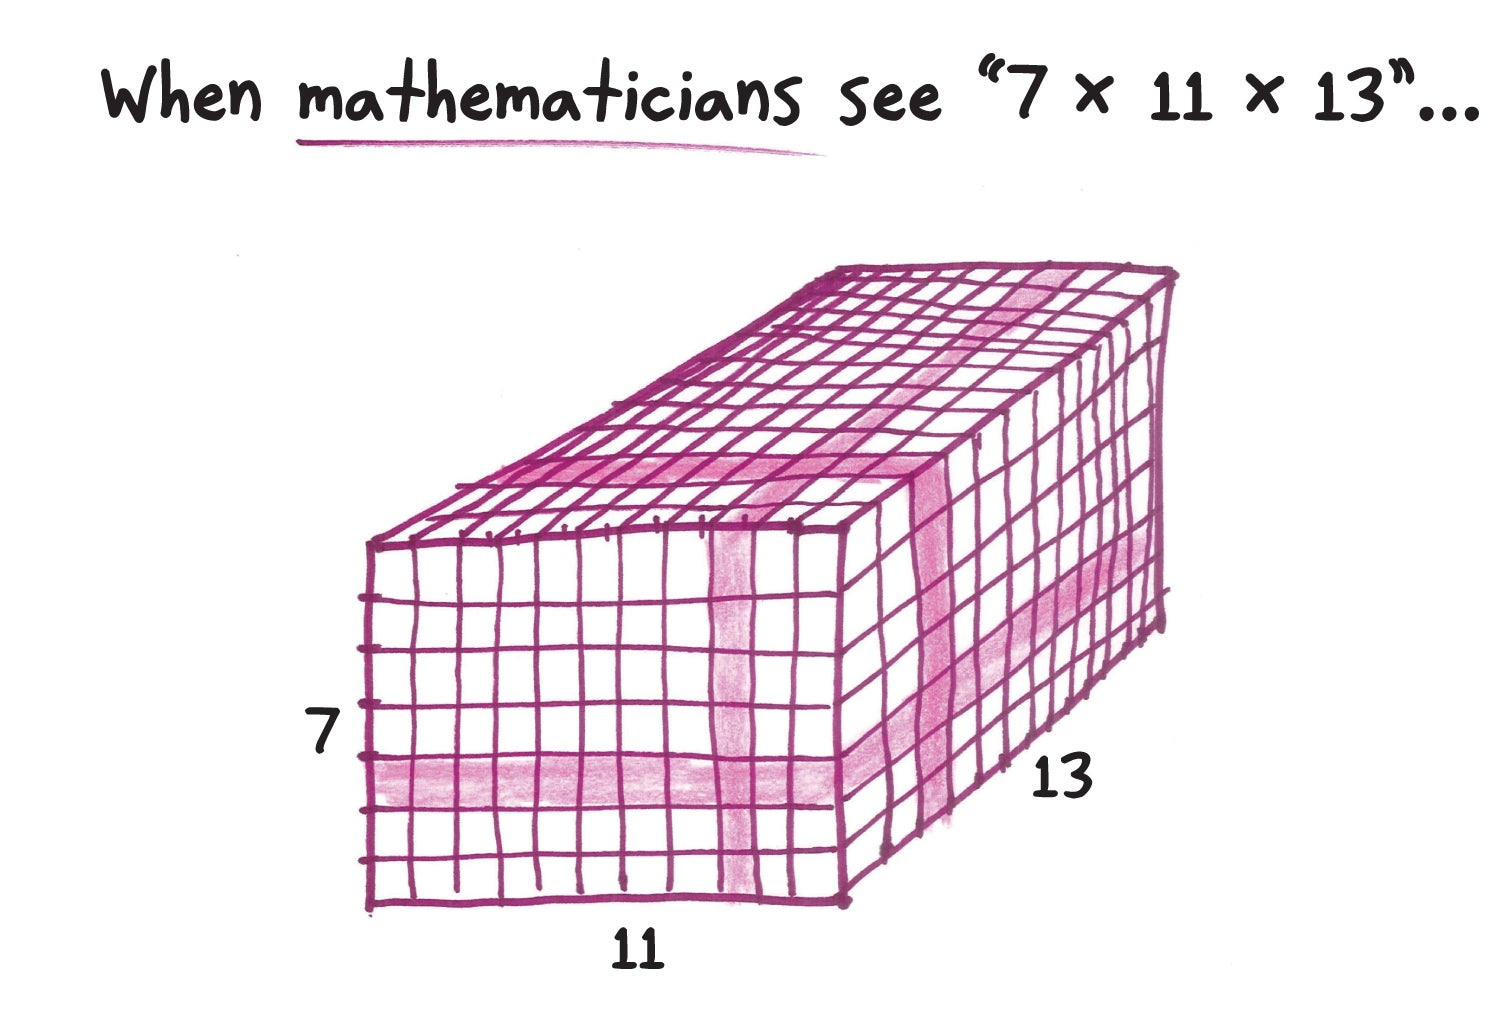 What does math look like to mathematicians?